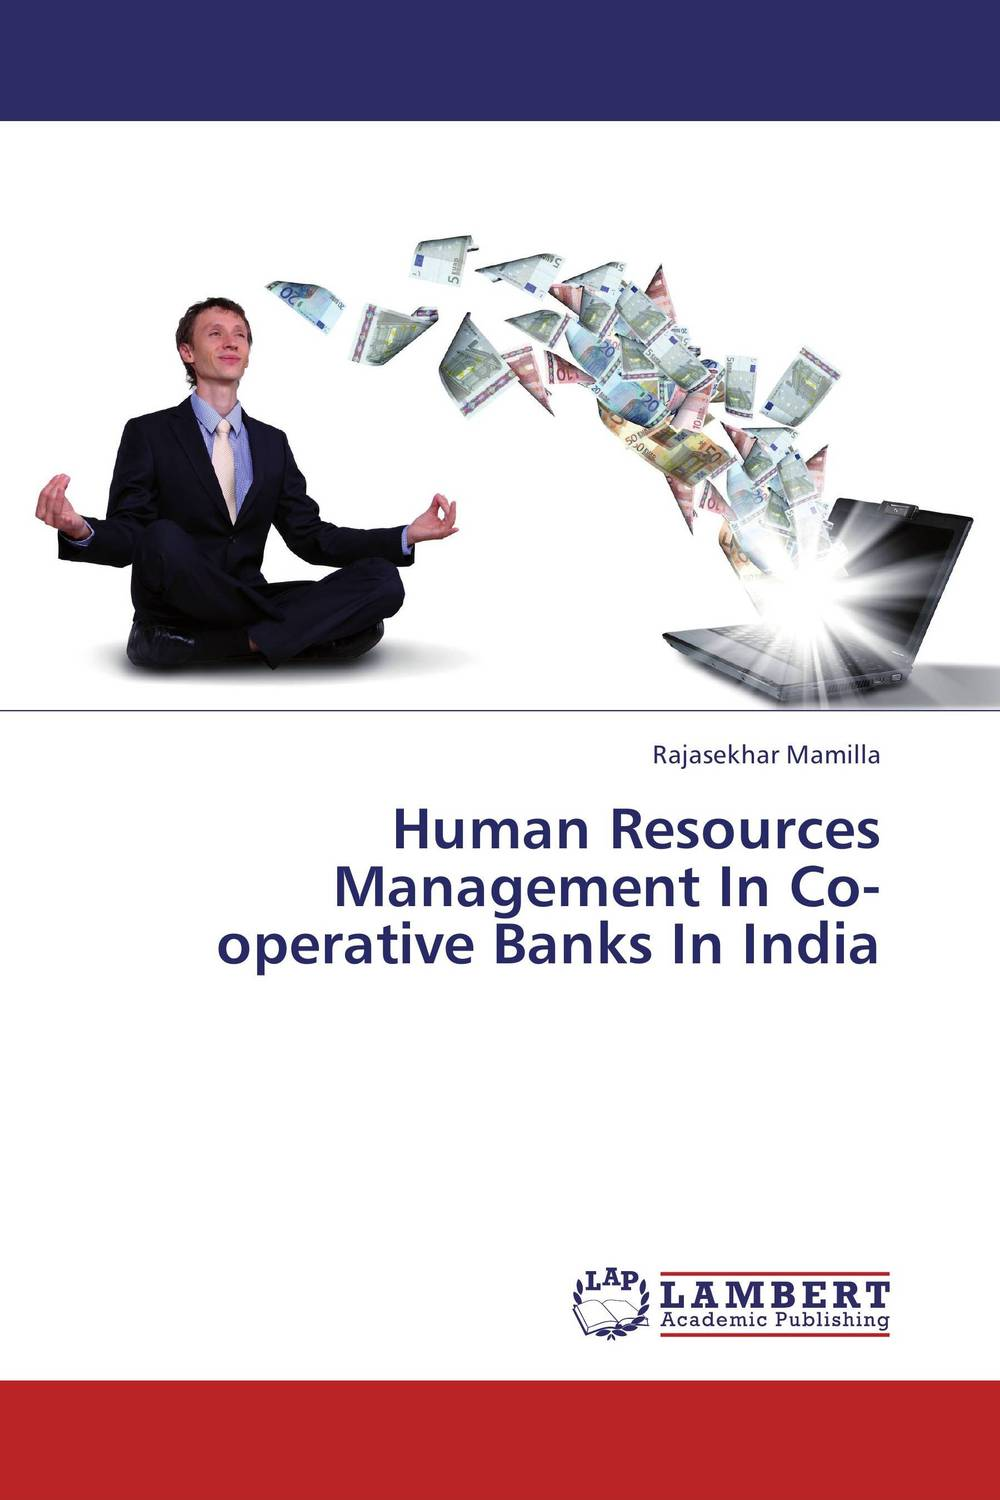 Human Resources Management In Co-operative Banks In India fabian amtenbrink the democratic accountability of central banks